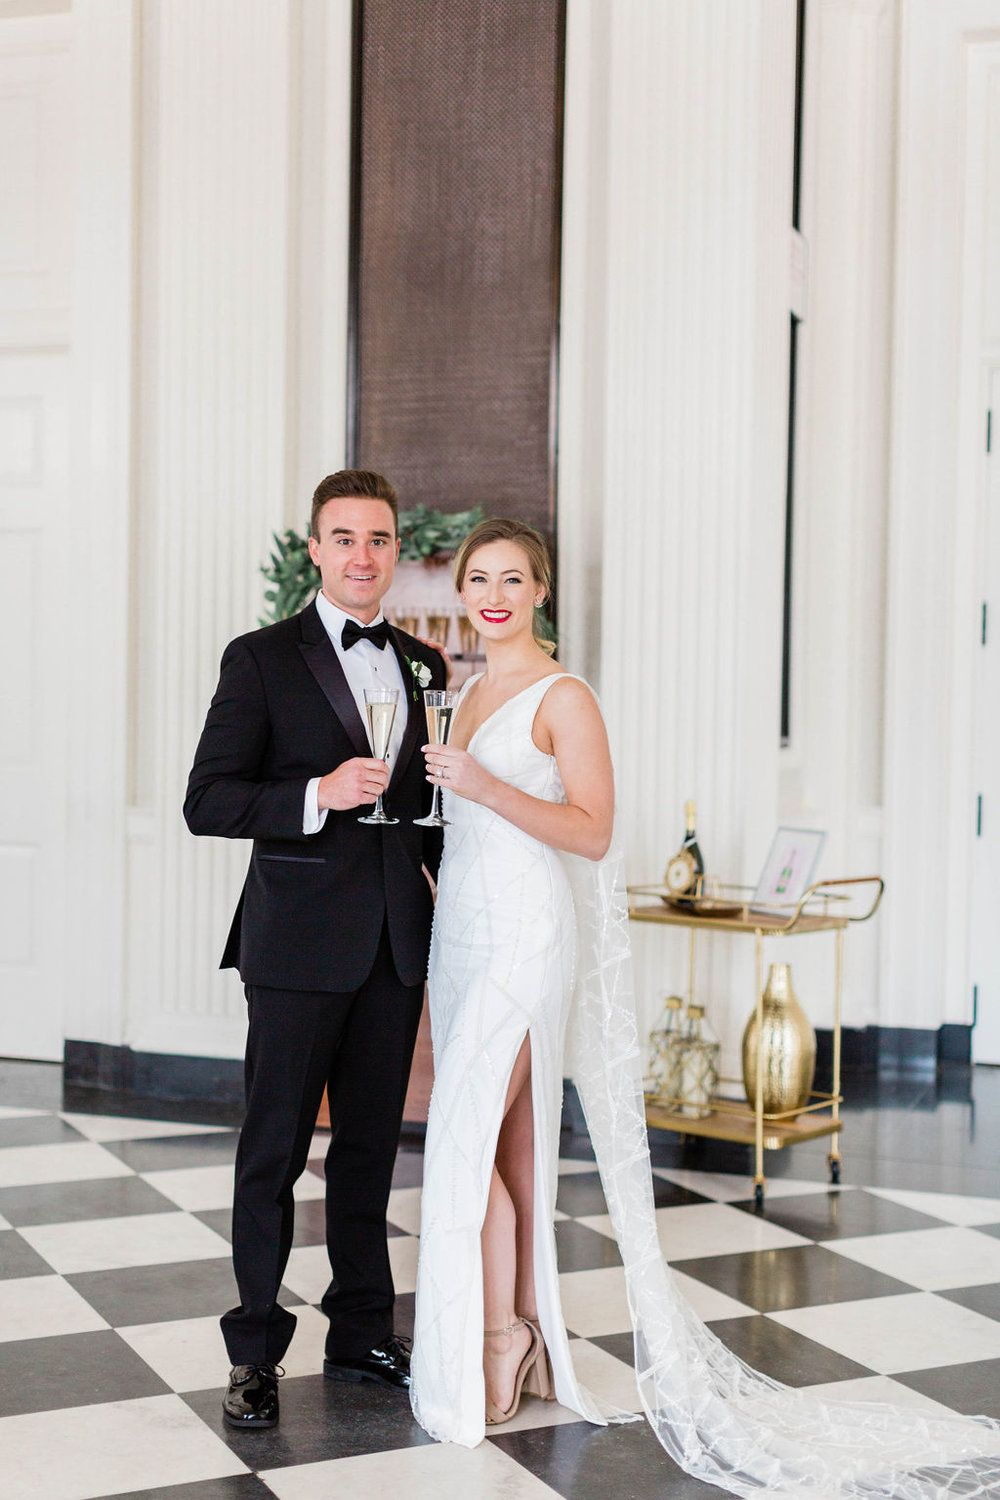 Your Day by MK - Chicago History Museum : A Black Tie Affair | Chicago  history museum, Chicago history, Black tie affair dresses